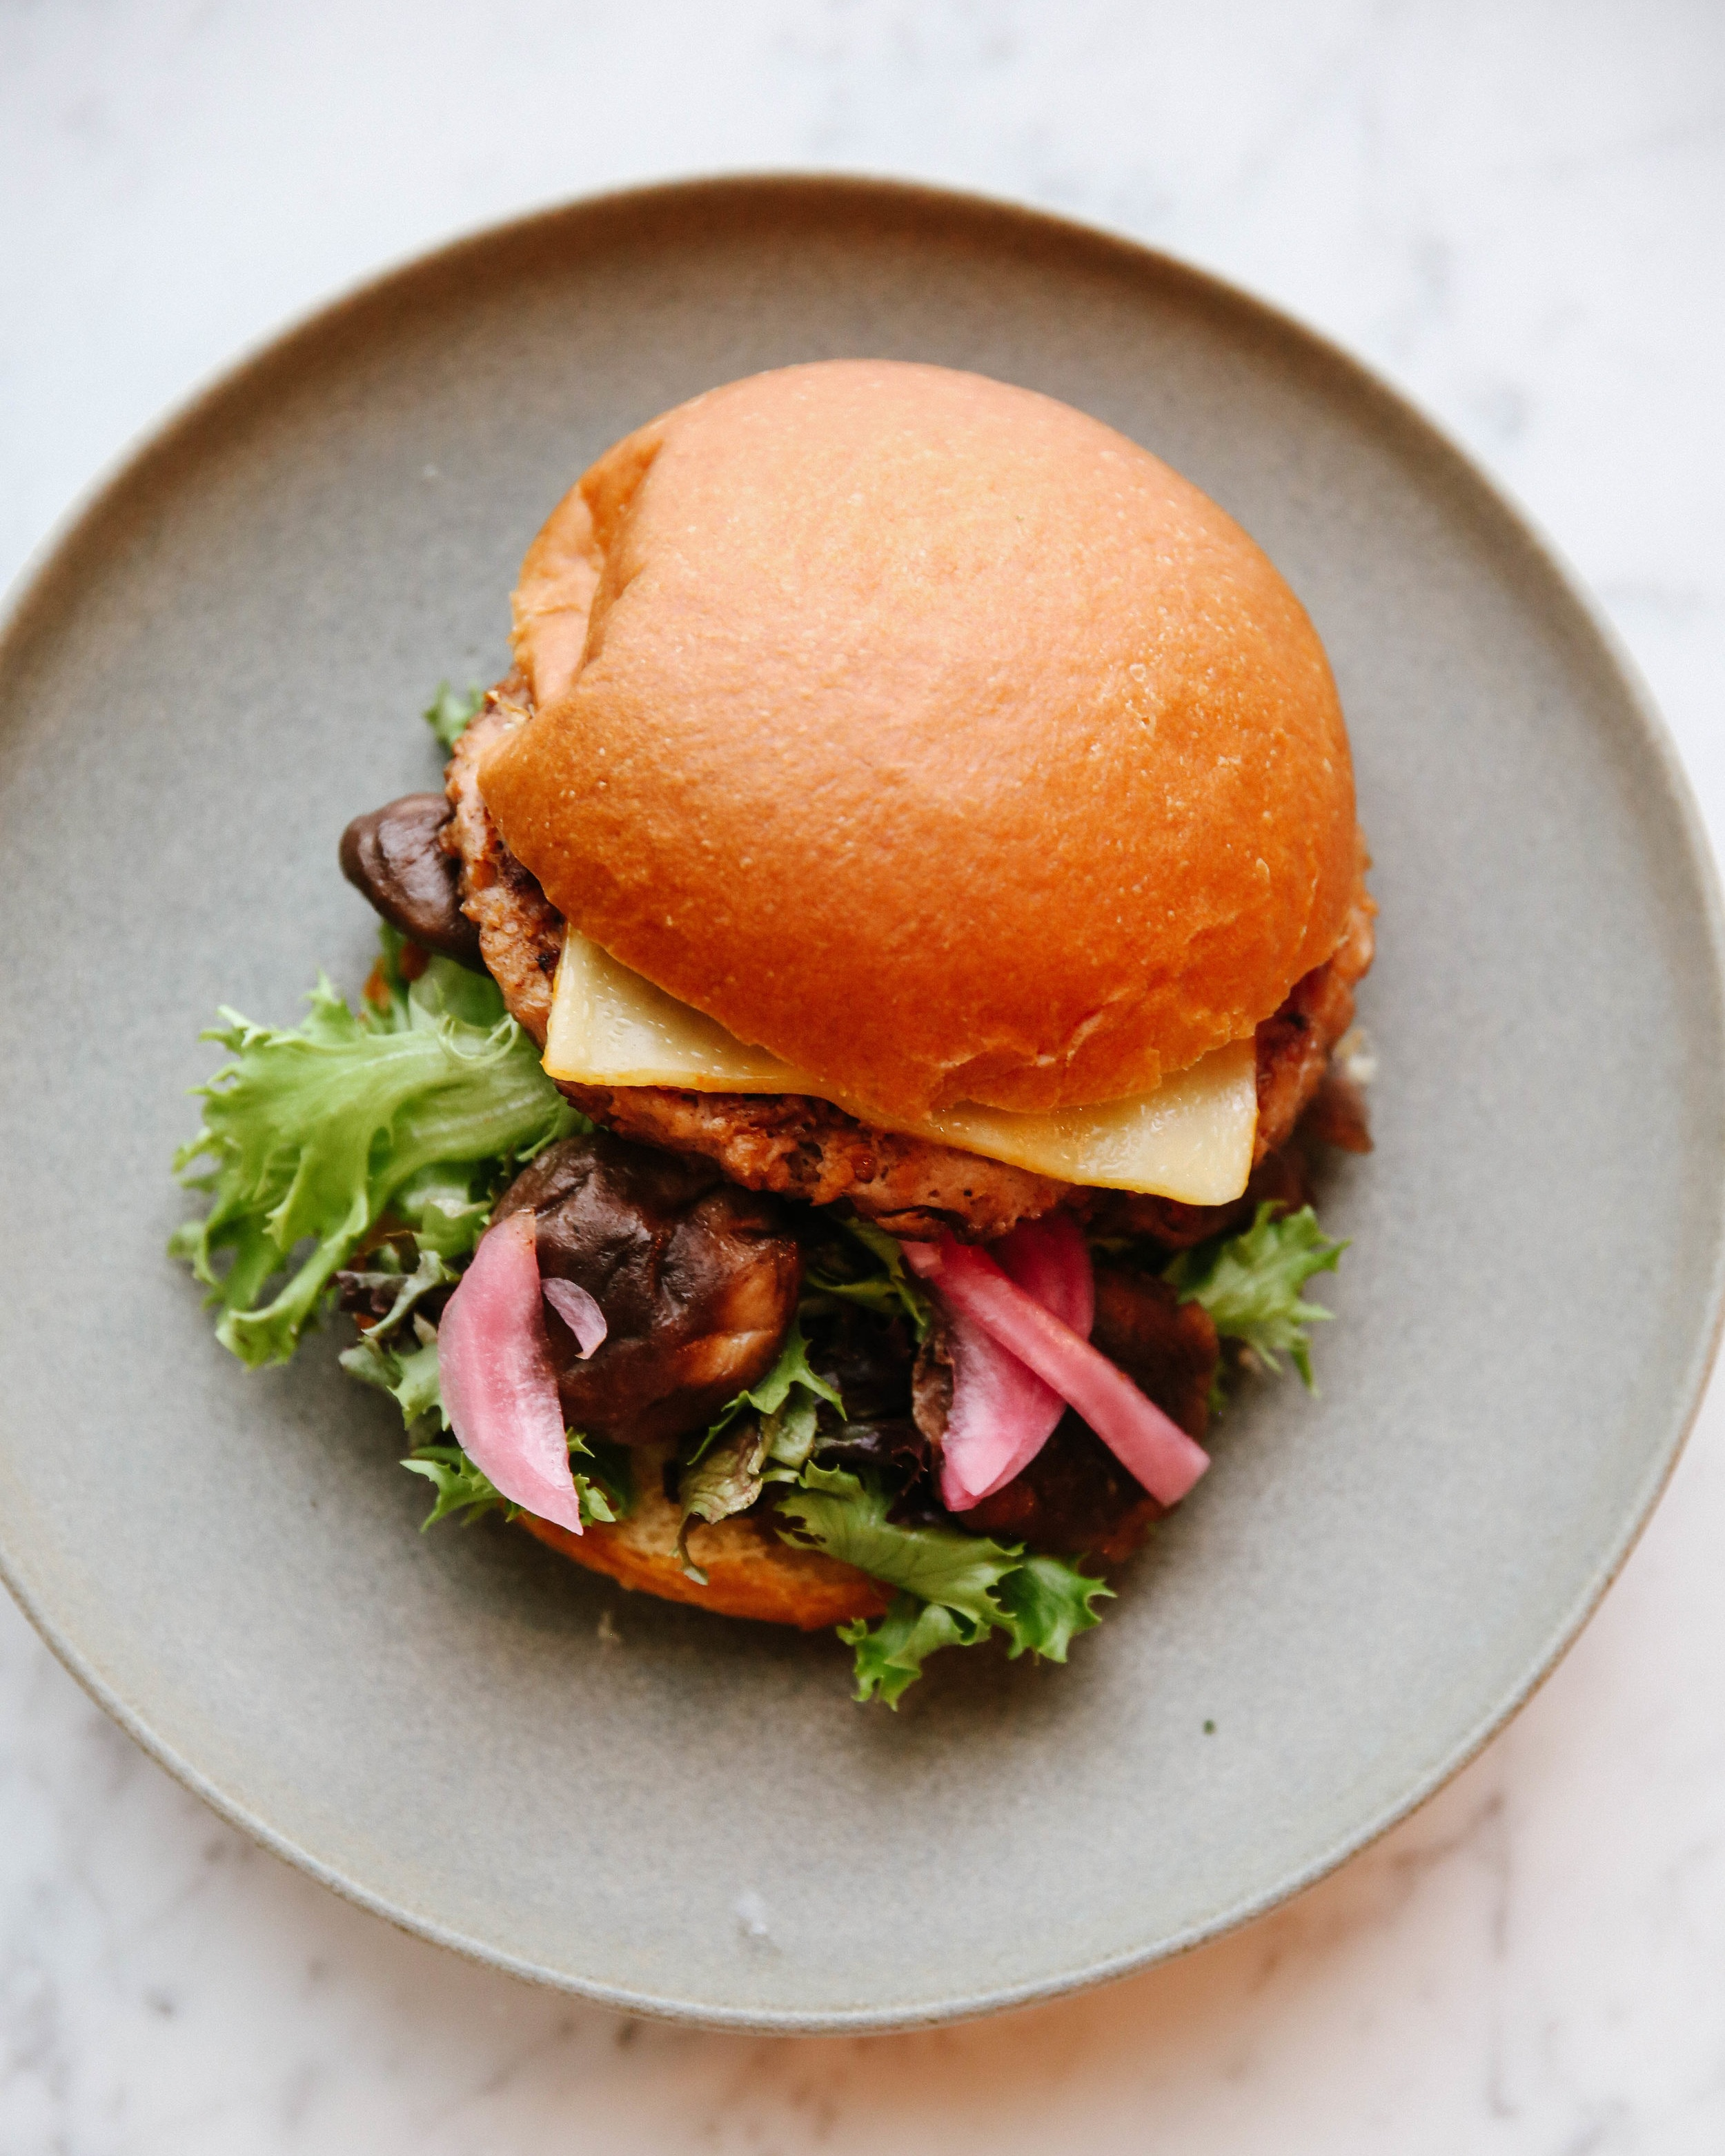 Beyond Burger - Our veggie burger is totally vegan and totally good - a Beyond Burger patty, greens, caramelized carrots, pickle, roast tomatoes and special sauce on a sprout bun. You can even swap out any bun with a GF bun or a lettuce cup, if that's what you're into.